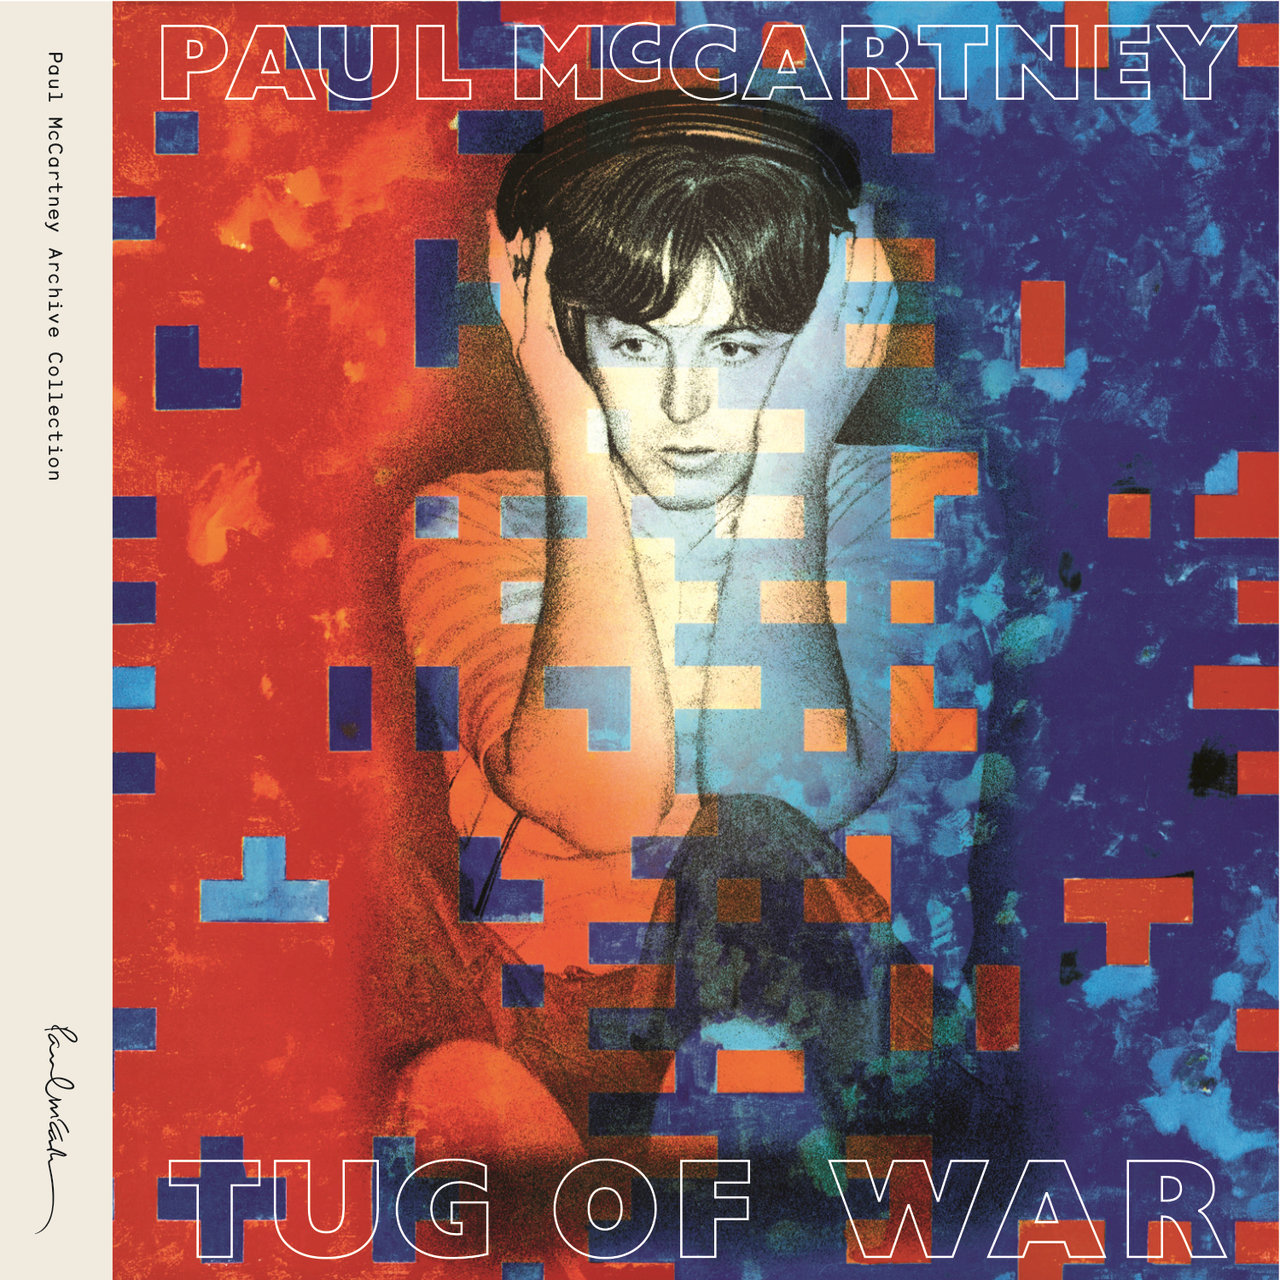 Tug Of War (Deluxe Edition)